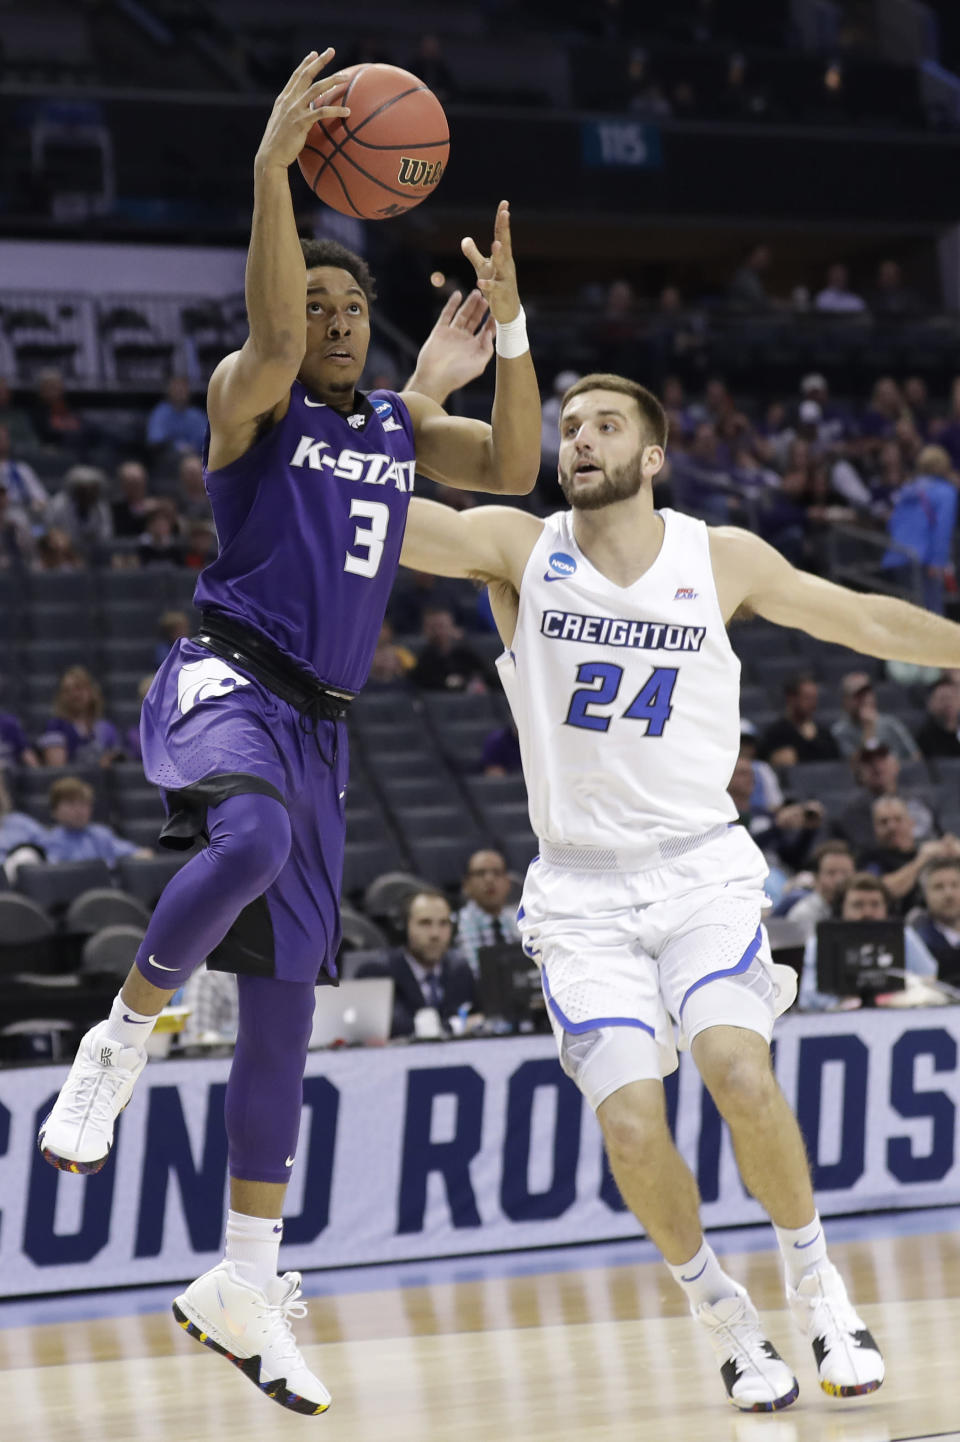 Kansas State's Kamau Stokes (3) drives past Creighton's Mitch Ballock (24) during the first half of a first-round game in the NCAA men's college basketball tournament in Charlotte, N.C., Friday, March 16, 2018. (AP Photo/Gerry Broome)